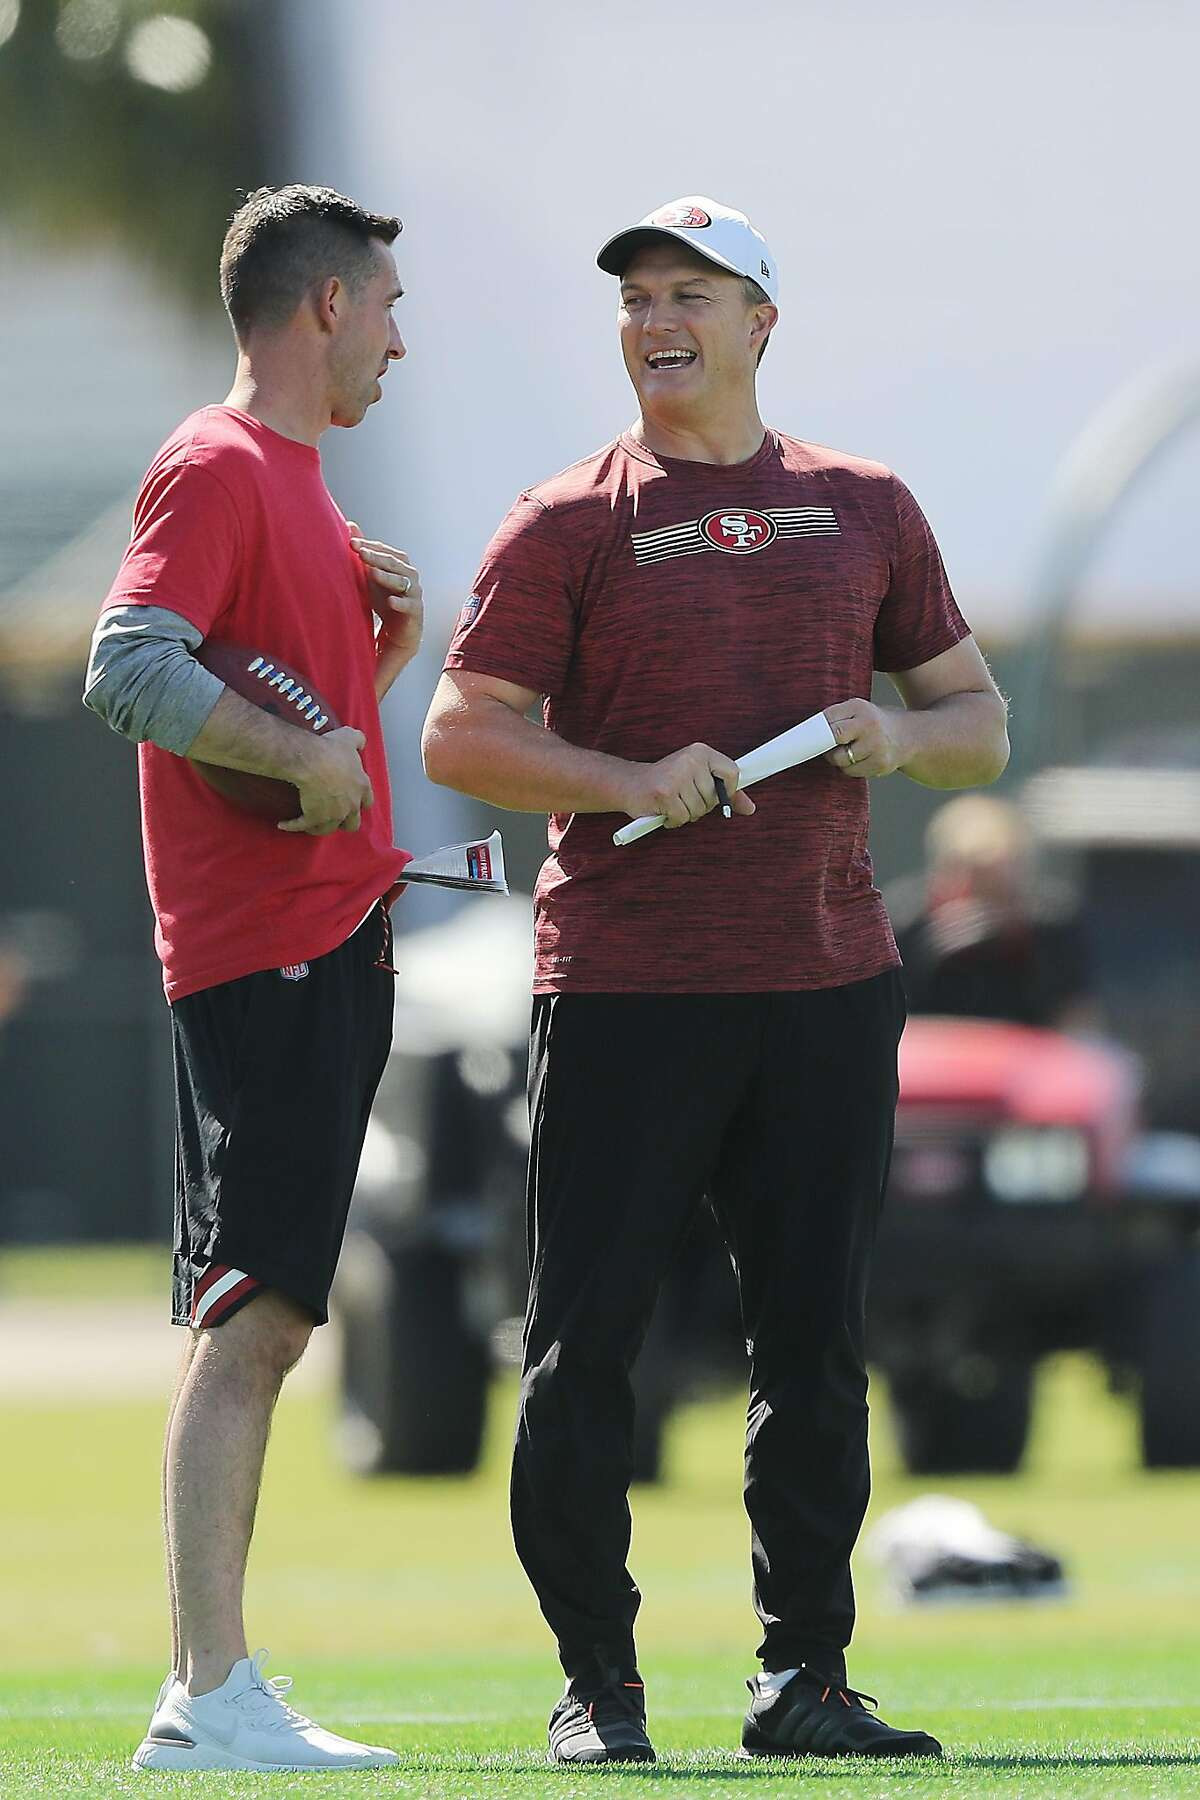 Head coach Kyle Shanahan of the San Francisco 49ers (L) talks with general manager John Lynch during practice for Super Bowl LIV at the Greentree Practice Fields on the campus of the University of Miami on January 30, 2020 in Coral Gables, Florida. (Photo by Michael Reaves/Getty Images)